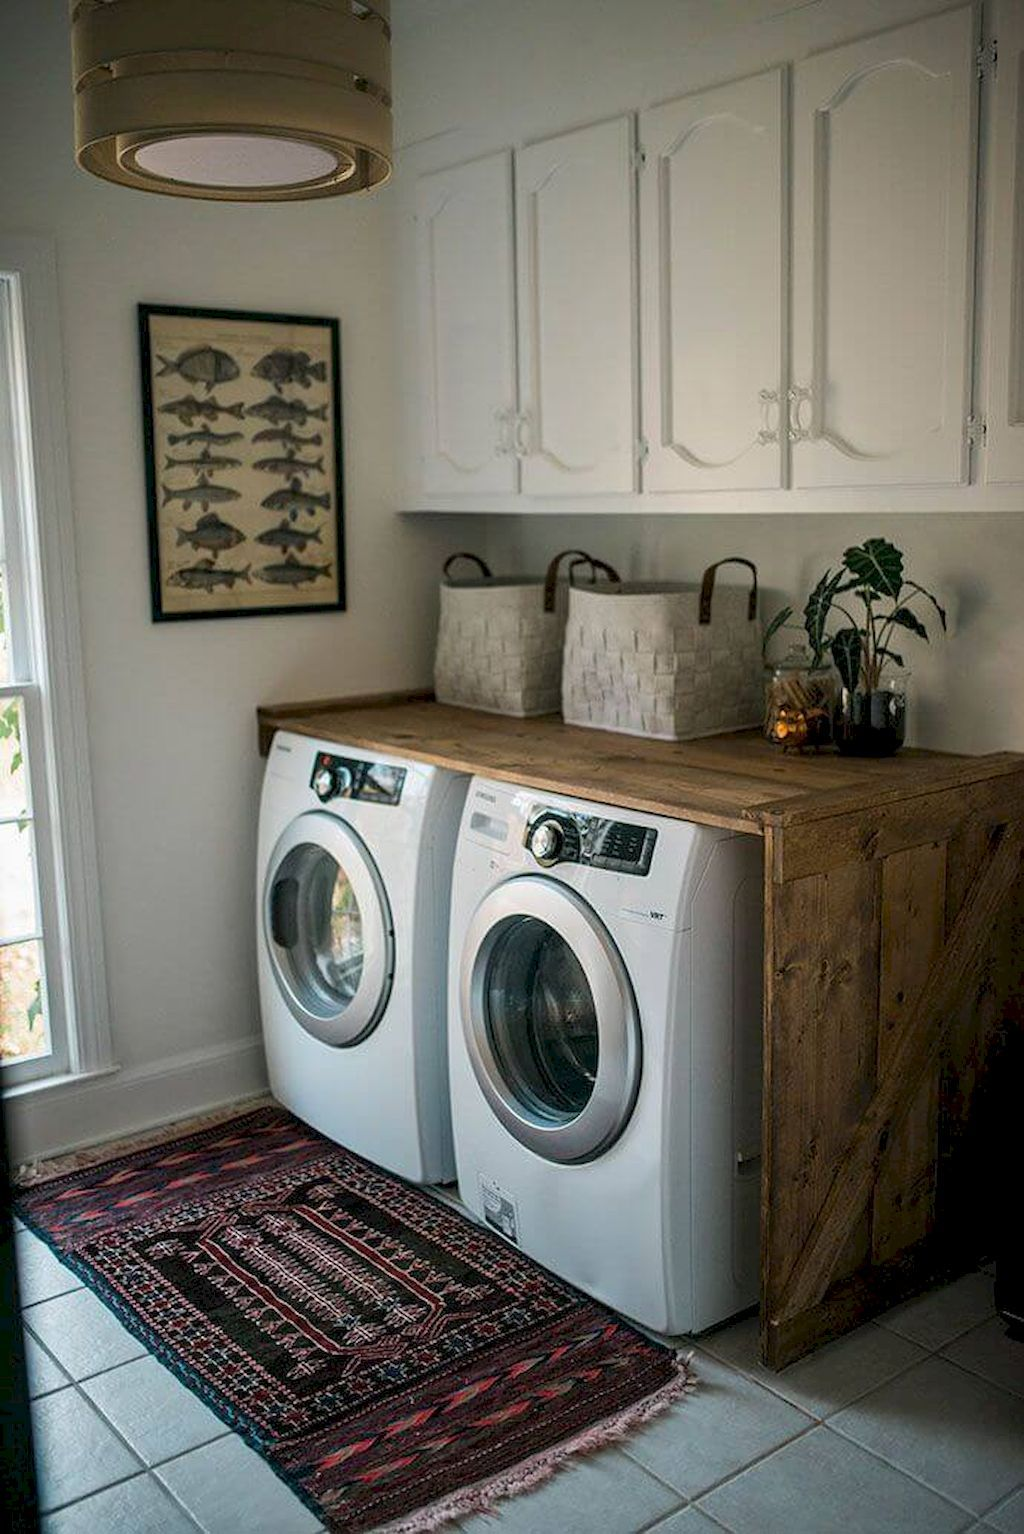 30 Rustic Laundry Room Ideas Decoration Remodel Laundry Rooms